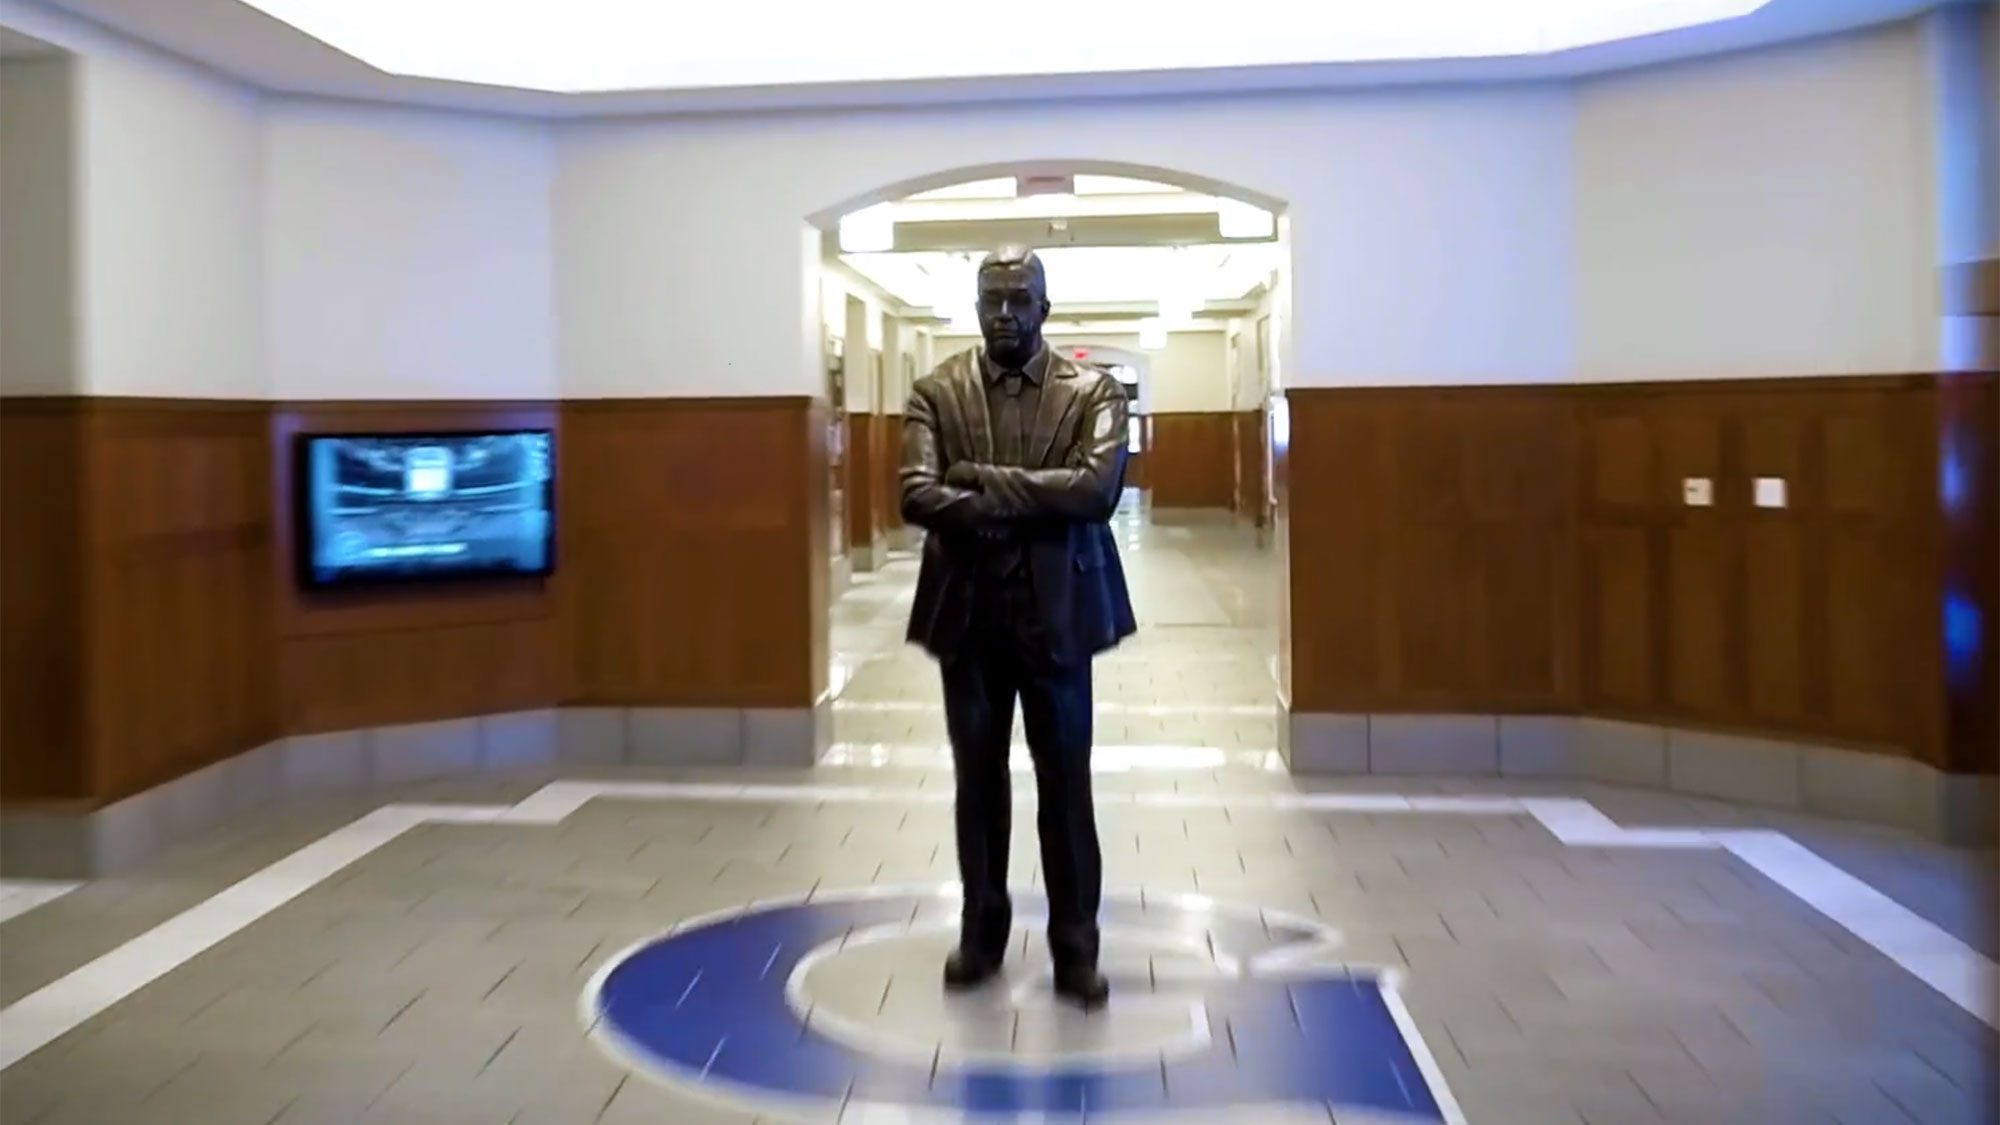 A bronze statue of john Thompson Jr. stands in the middle of the Georgetown Athletics logo inside the Thompson Athletic Center.